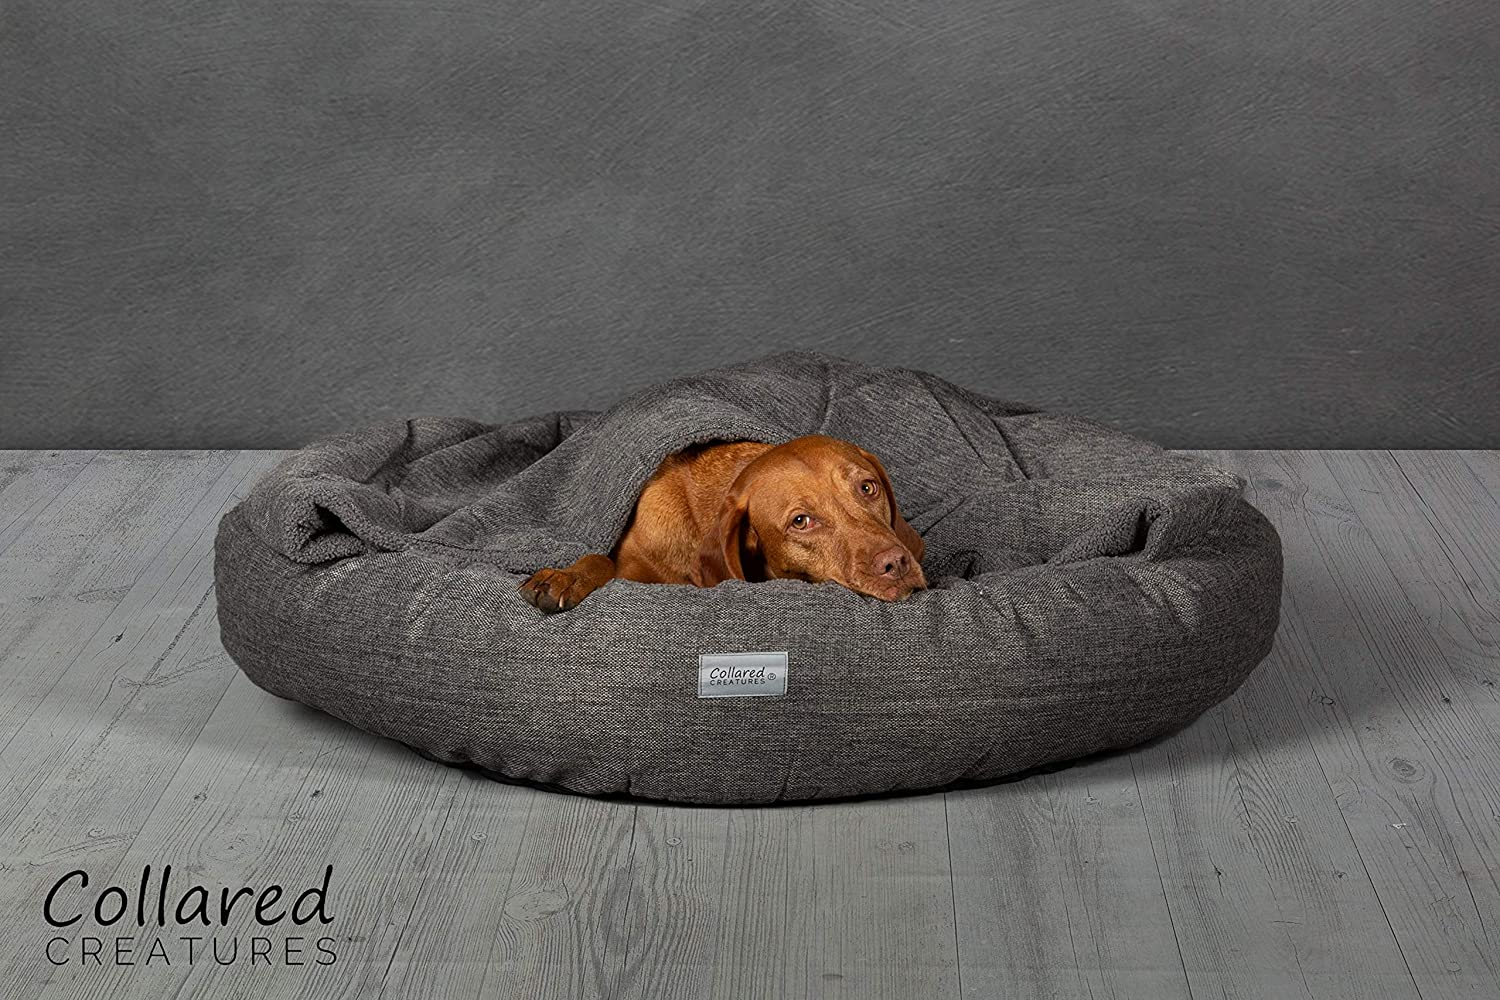 Collared Creatures Comfort Cocoon Dog Cave Bed, Dog Bed, Large 980mm Grey